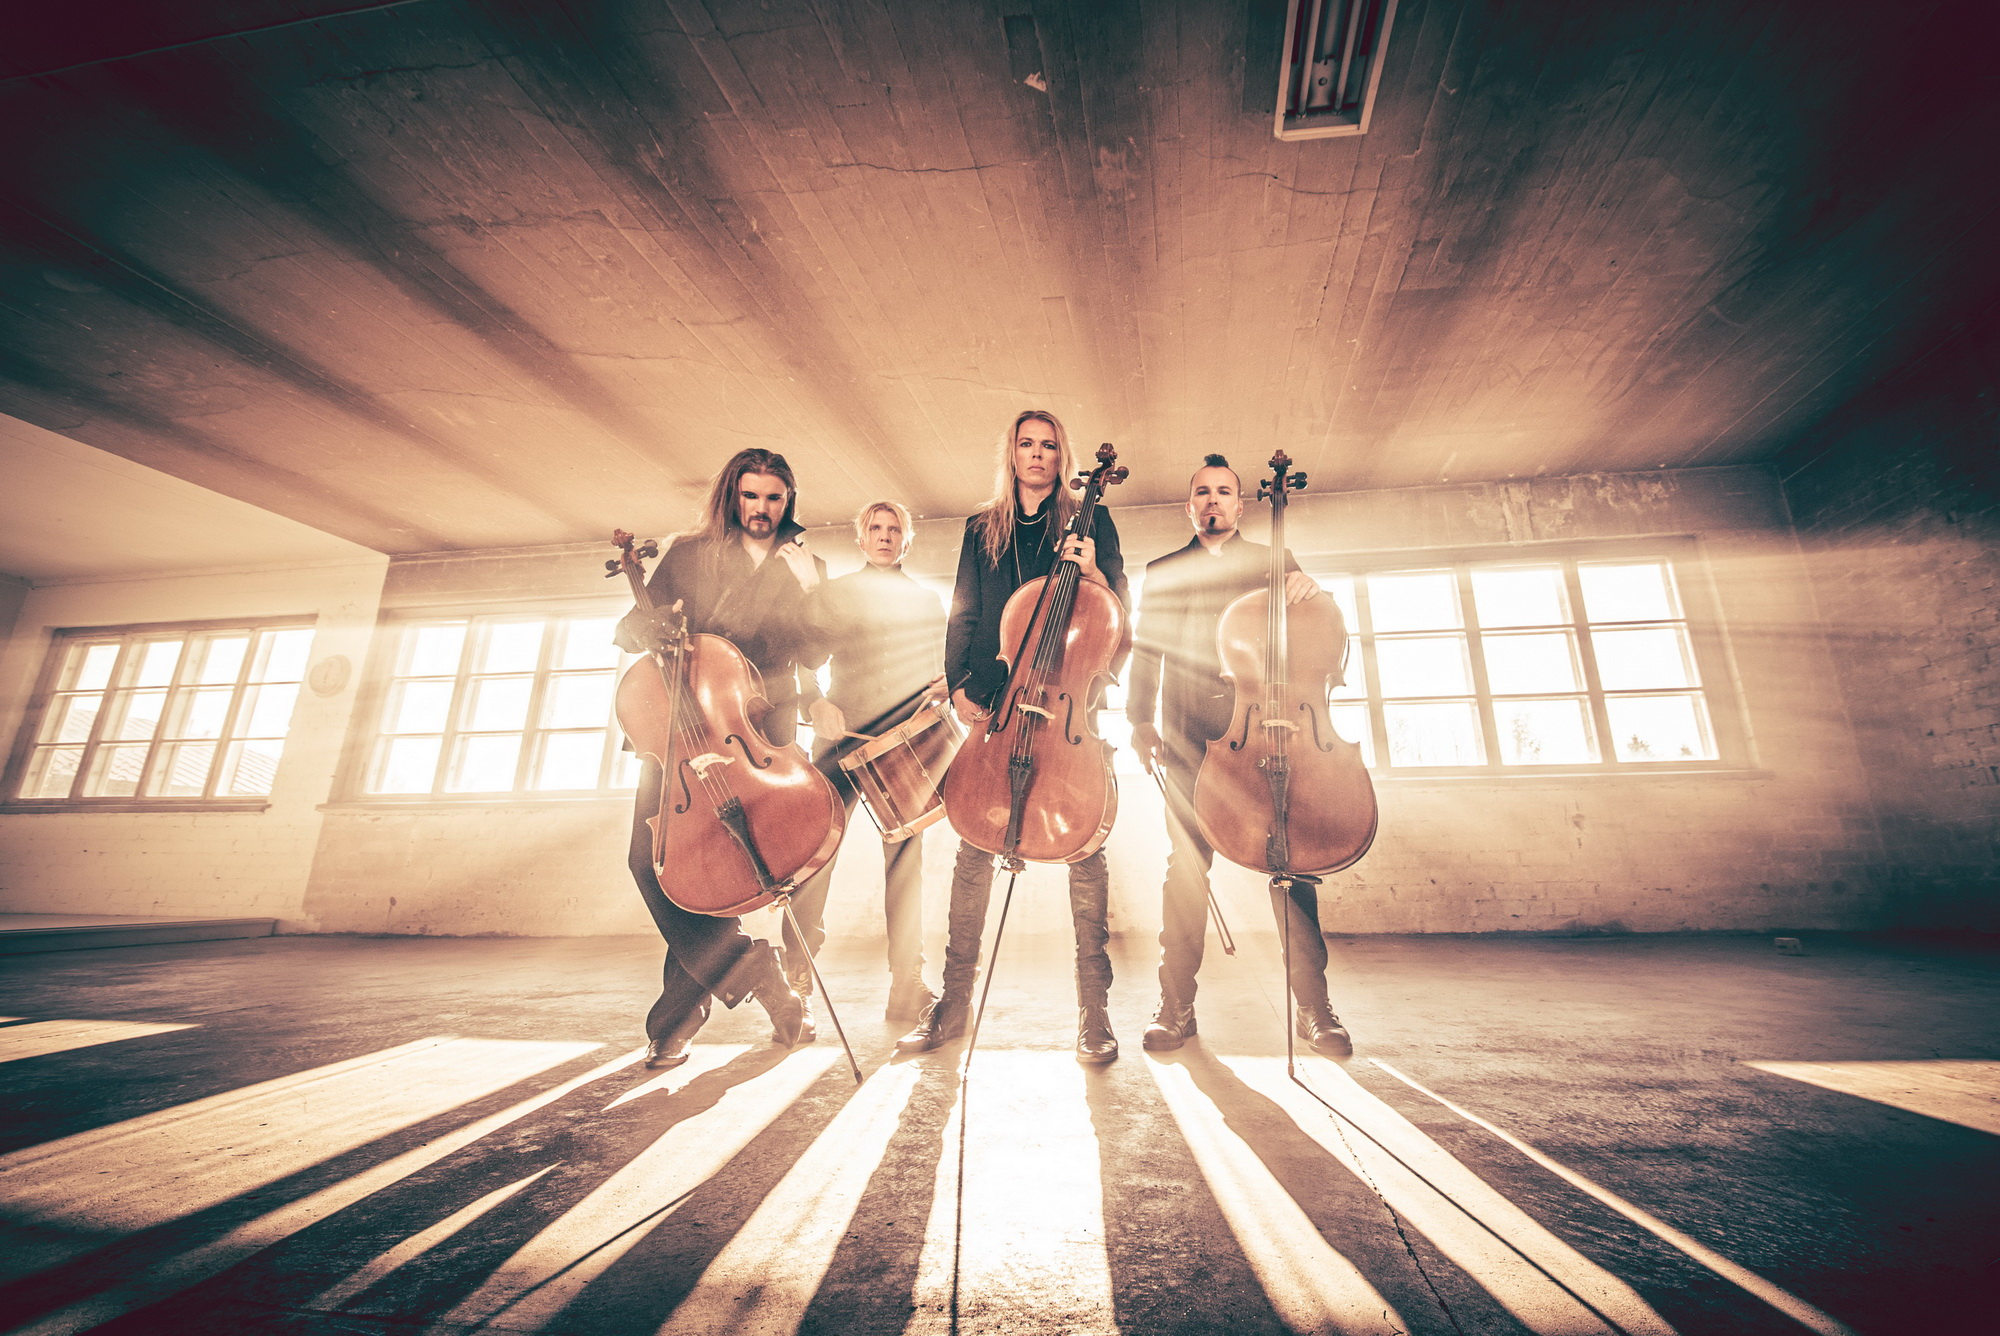 New album for APOCALYPTICA on January